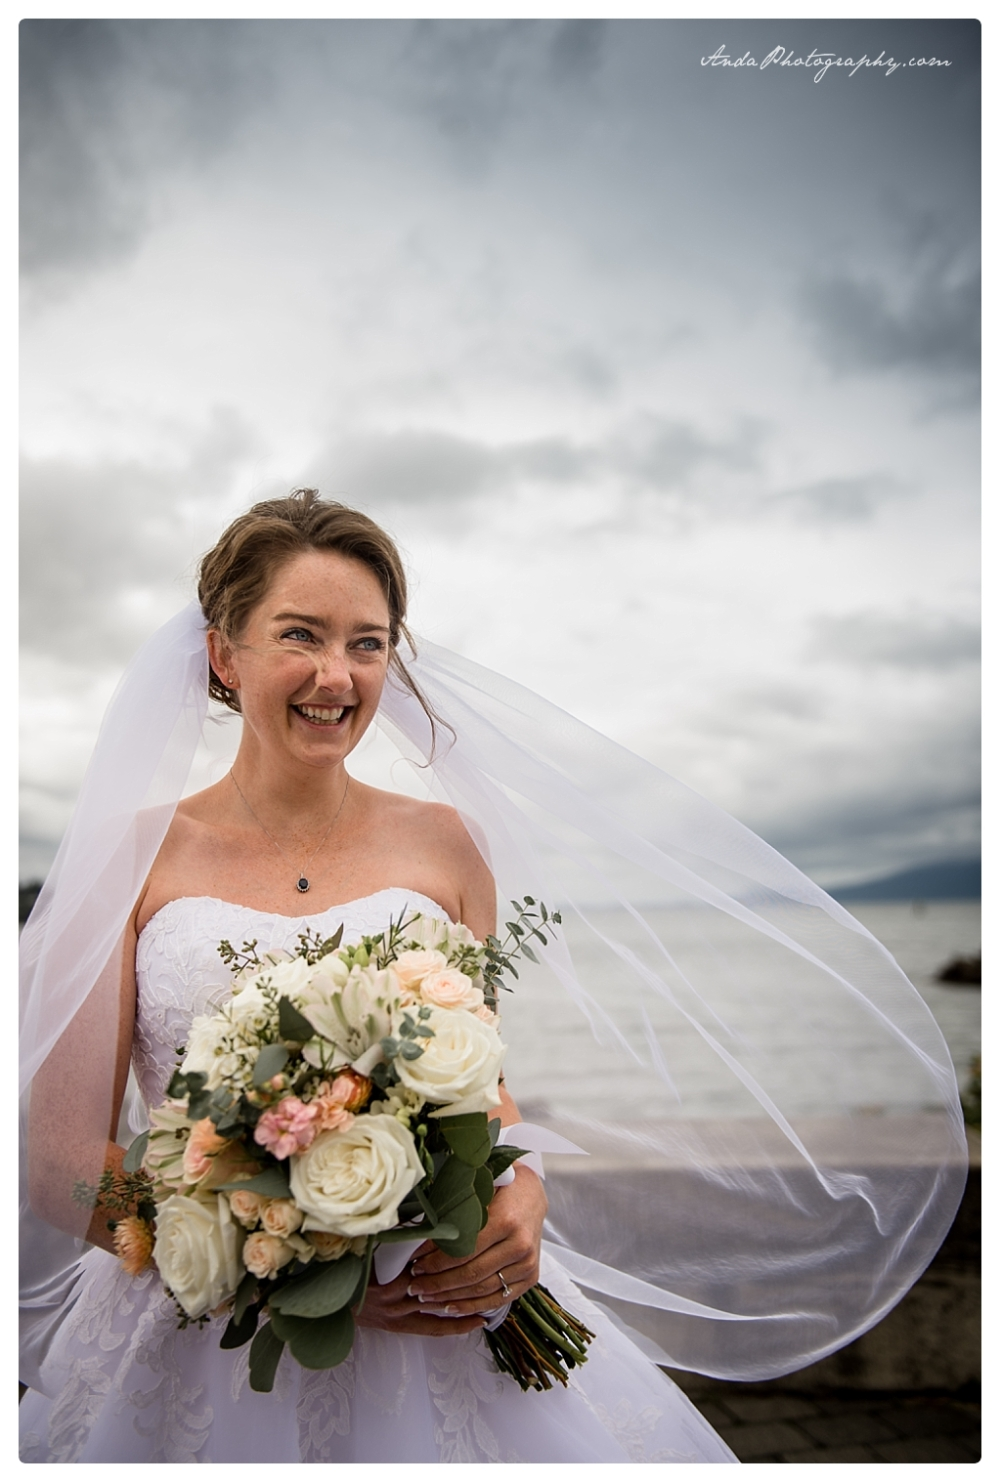 Anda Photography Bellingham wedding photographer Bellingham Yacht Club Wedding lifestyle wedding photographer Seattle Wedding Photographer_0053